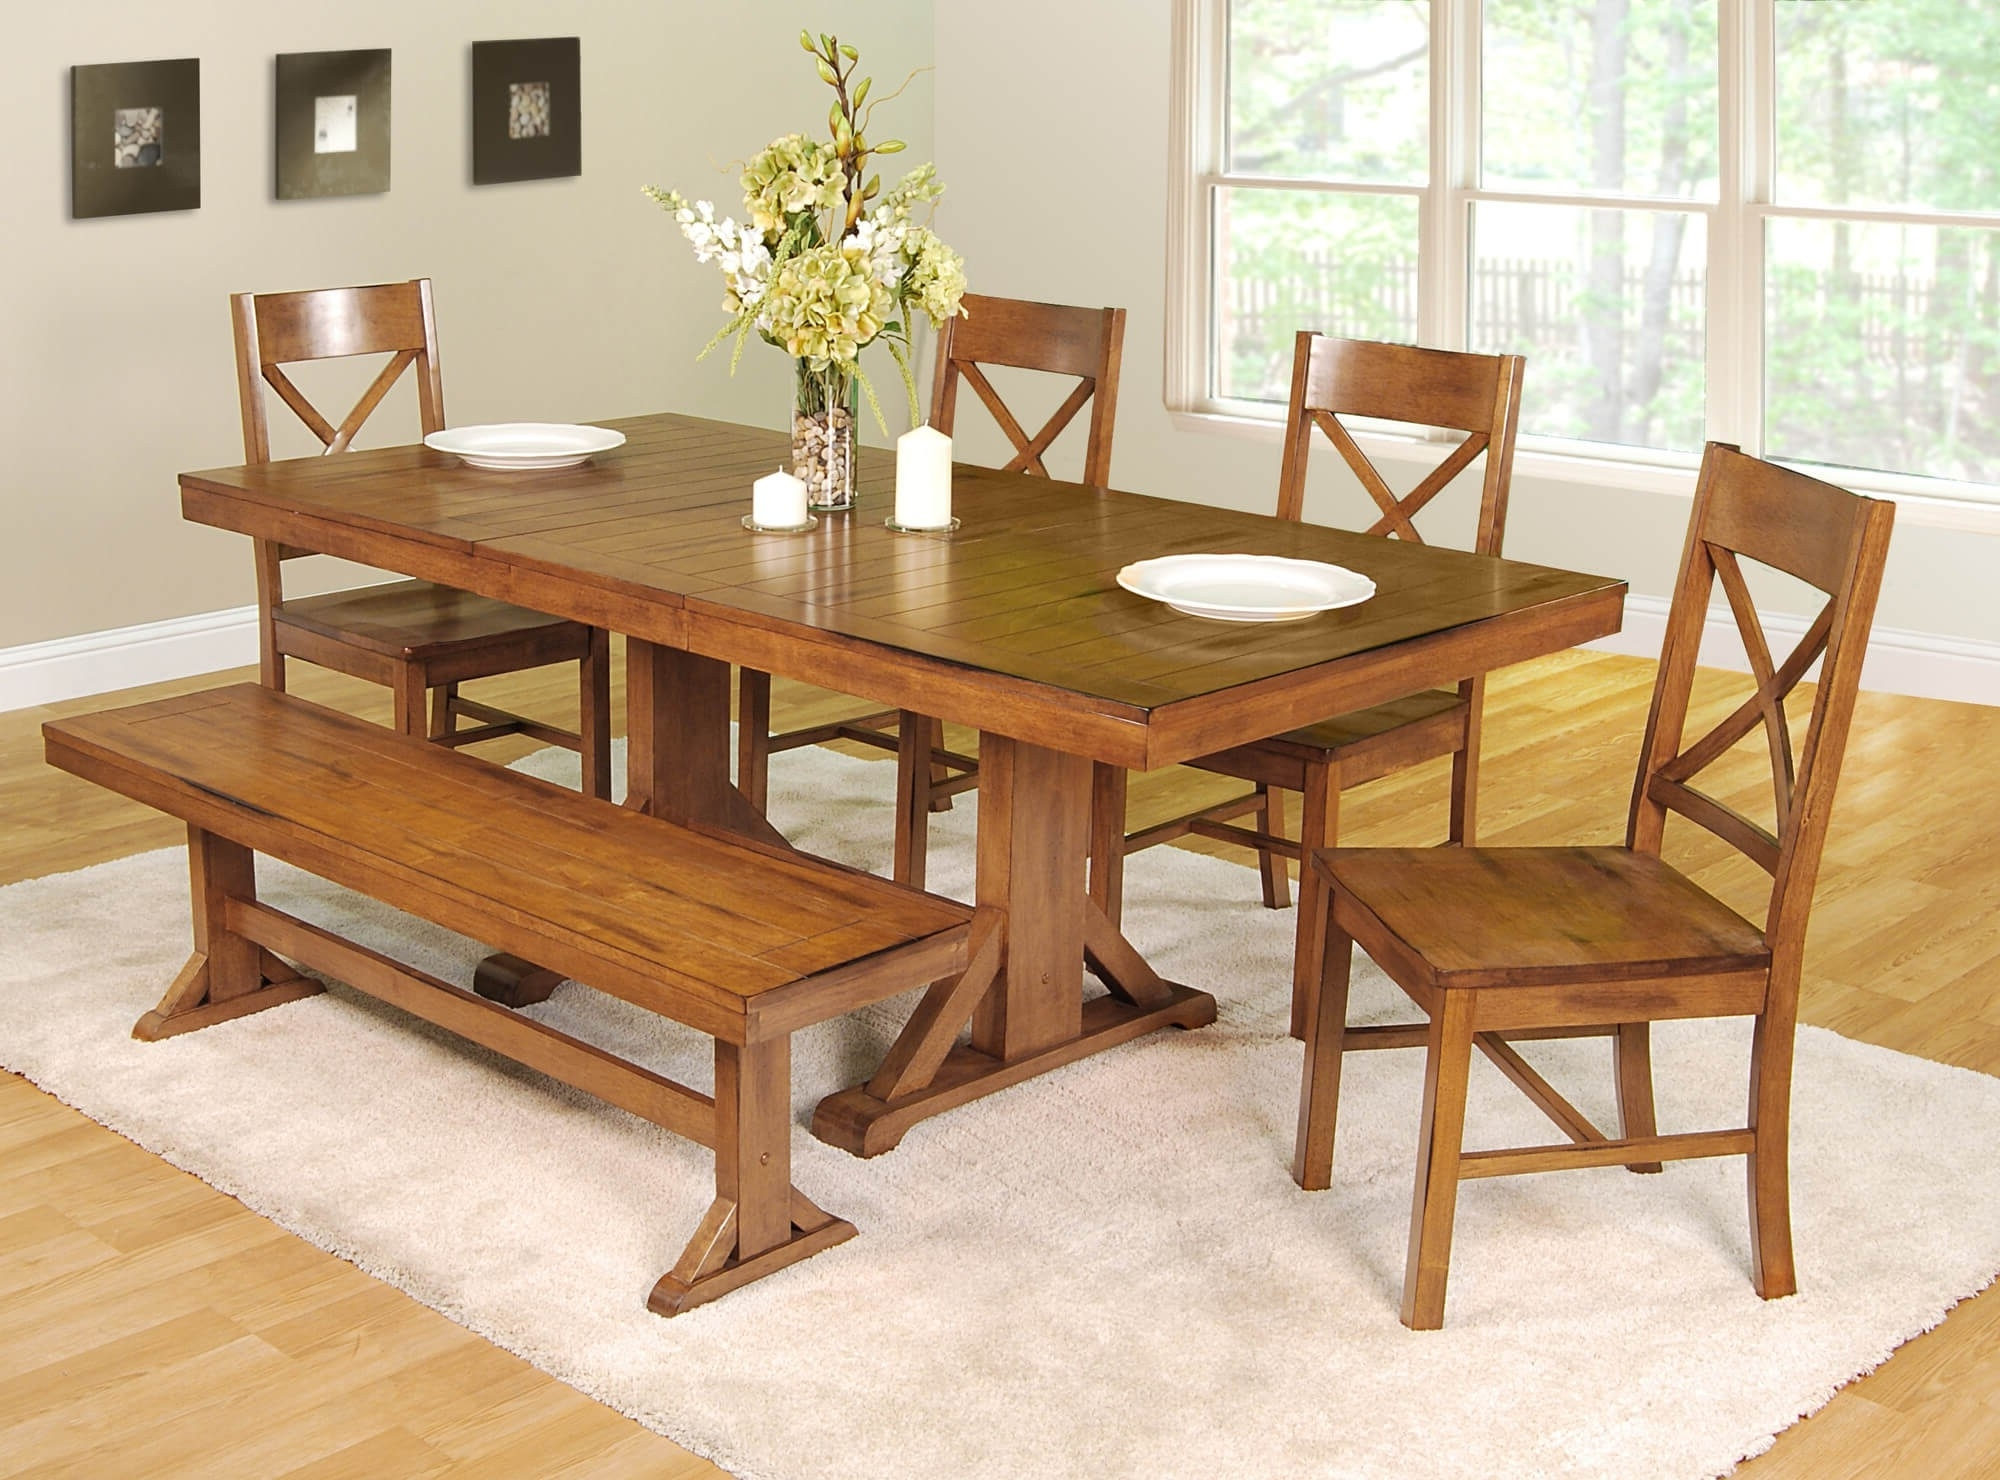 Small Two Person Dining Tables Regarding Trendy Small Dining Room Tables For Small Spaces New Maryland Merlot Slat (View 21 of 25)